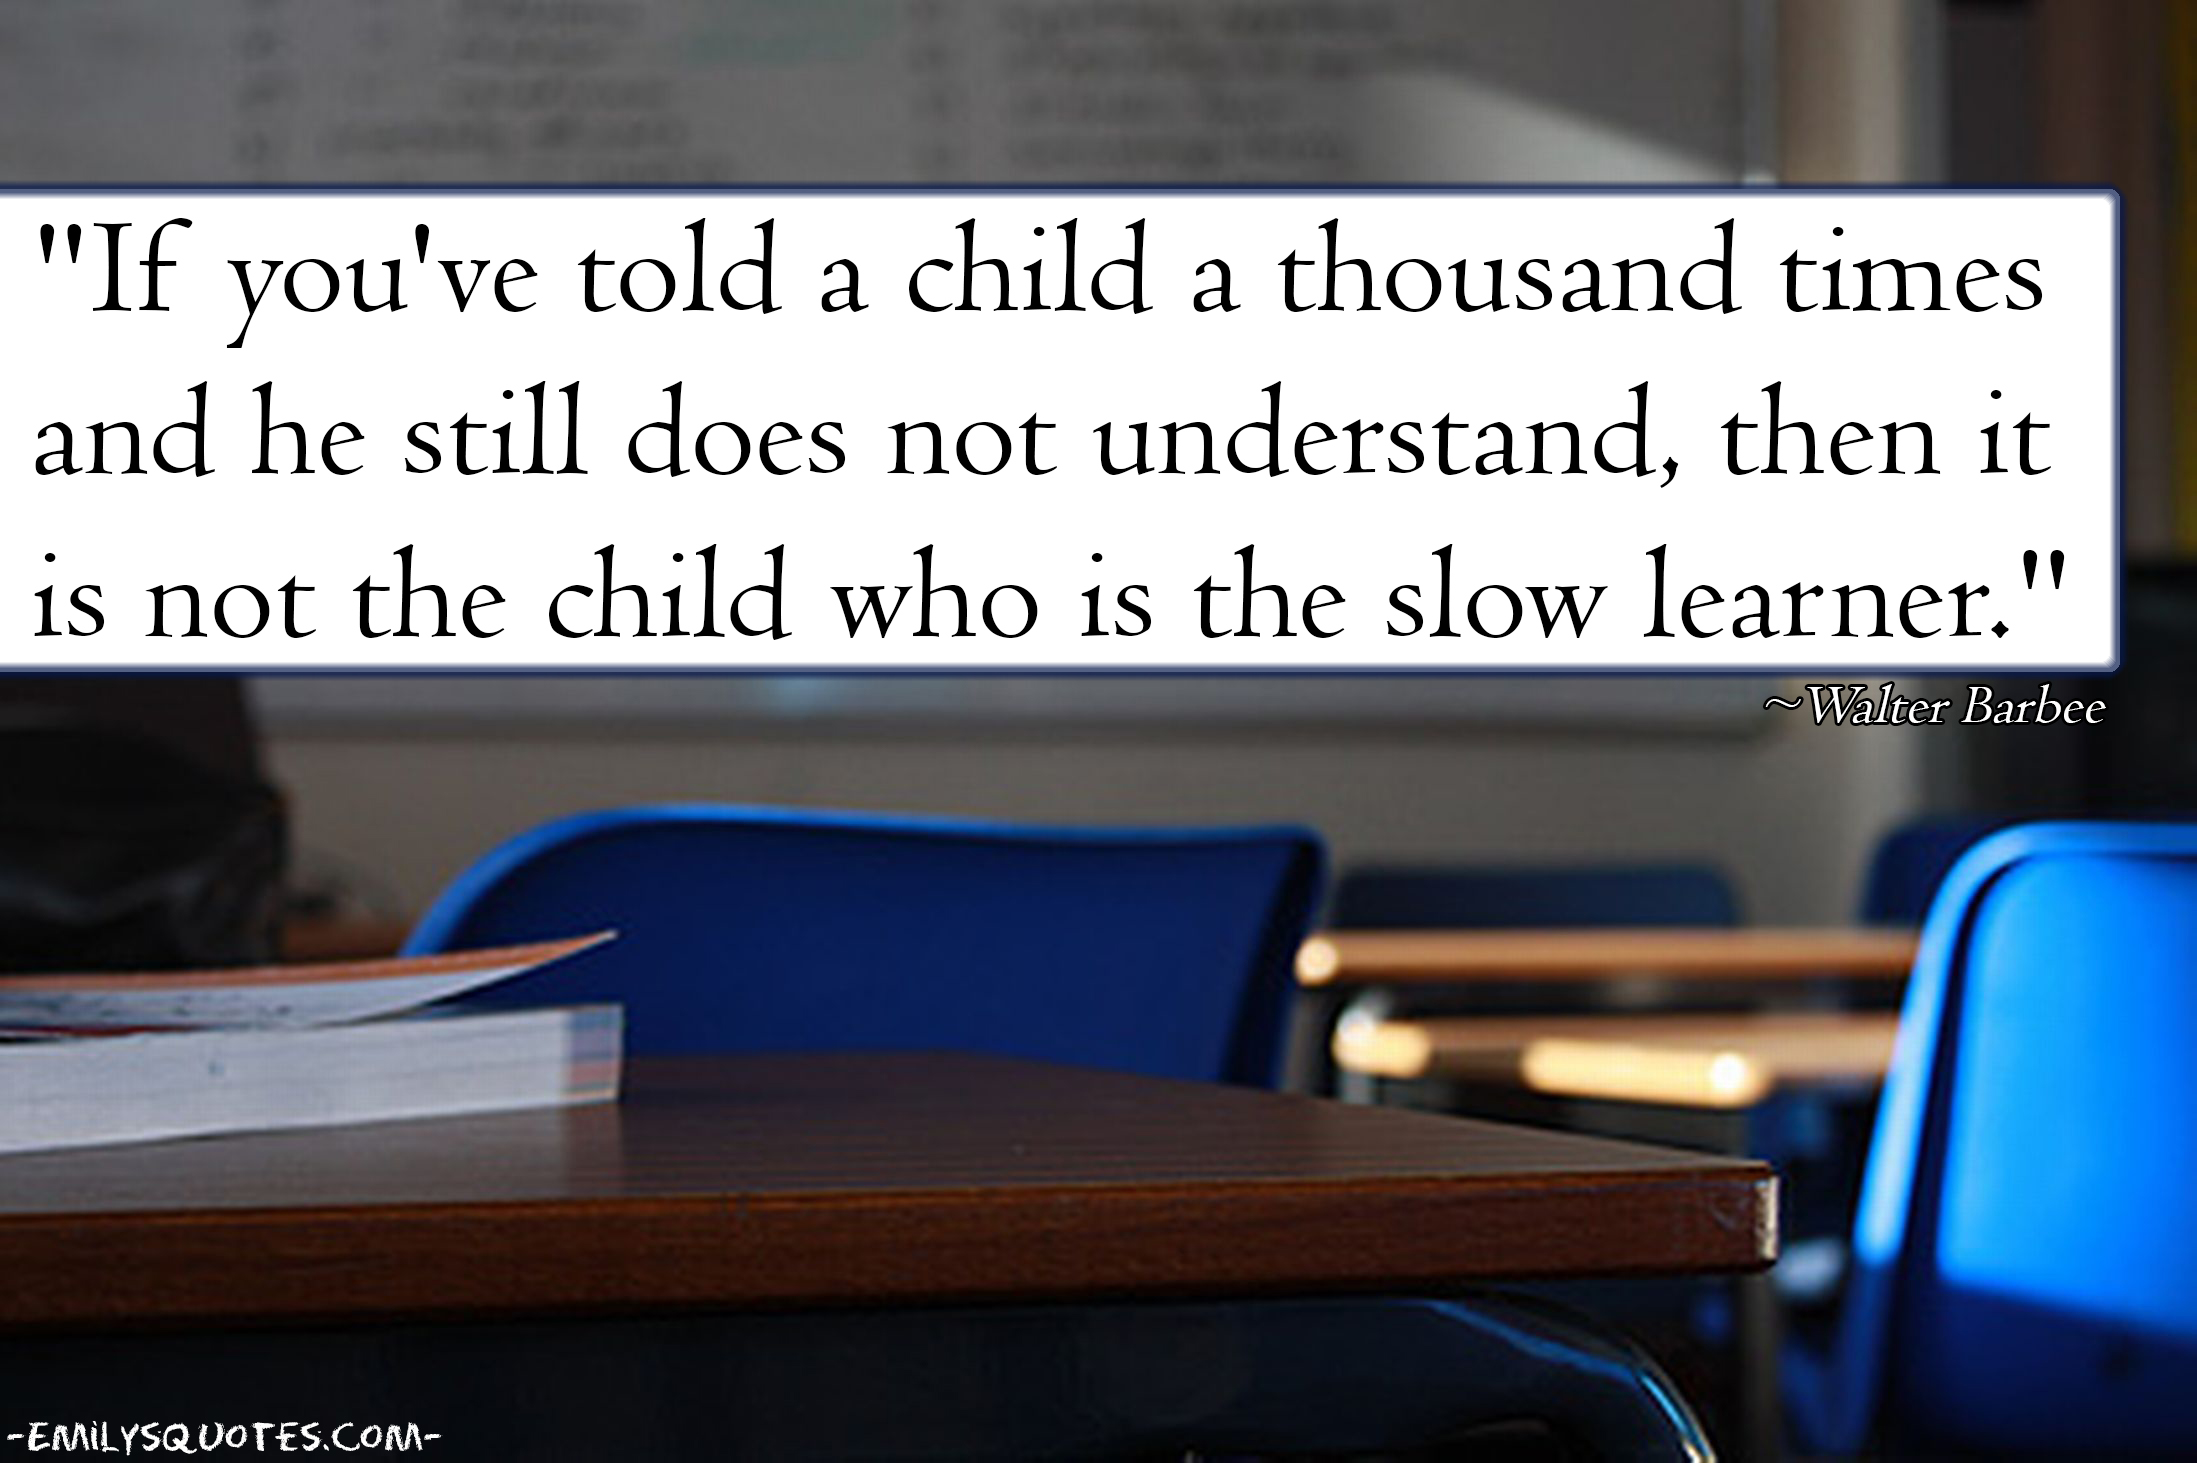 Quotes About Teaching Children If You've Told A Child A Thousand Times And He Still Does Not